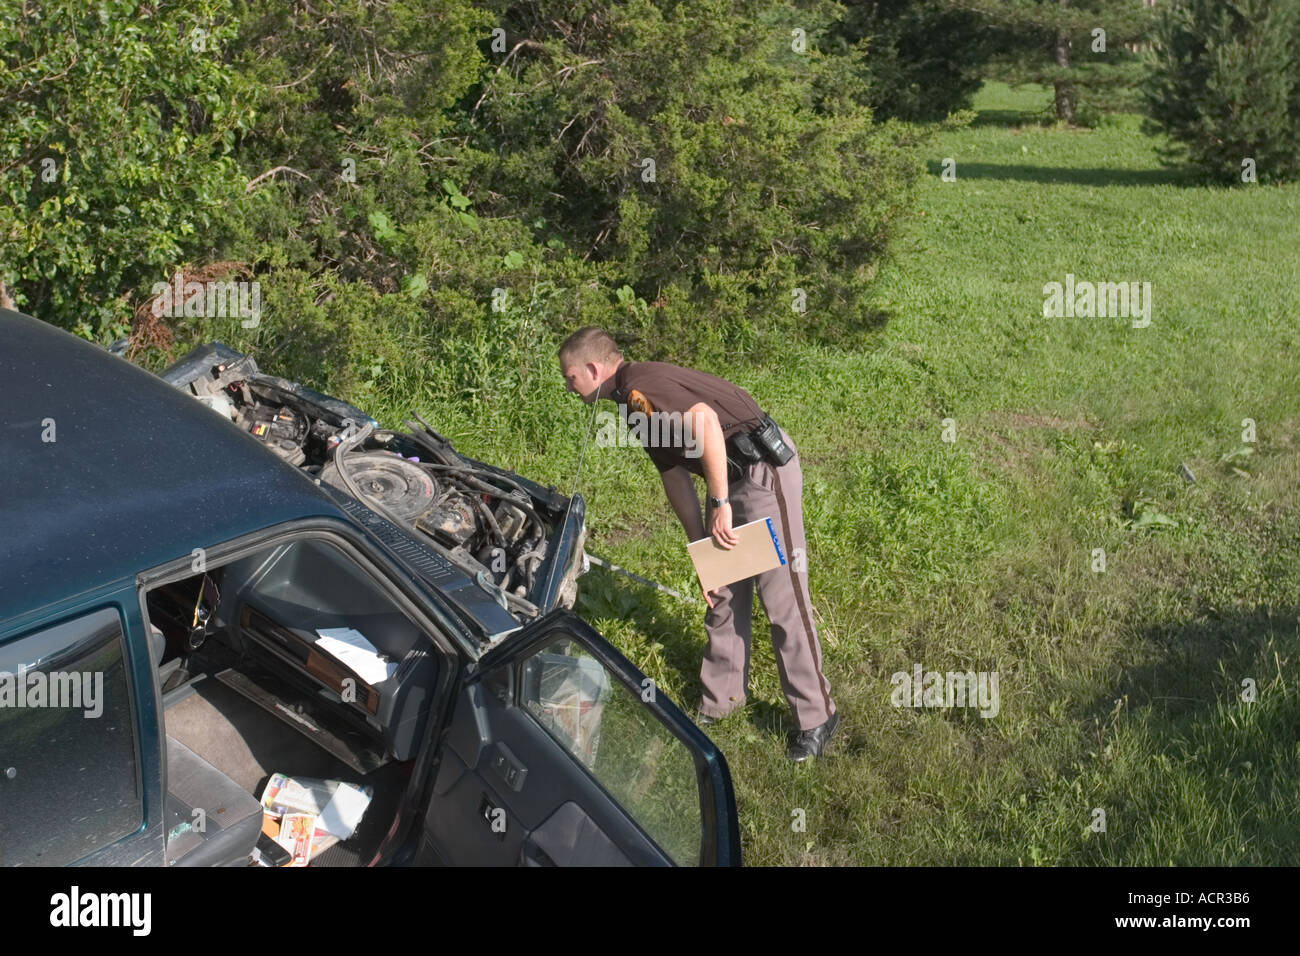 Sheriff s deputy investigating at the scene of an accident Fatality accident Rural Saline County Sheriff s Office Nebraska - Stock Image